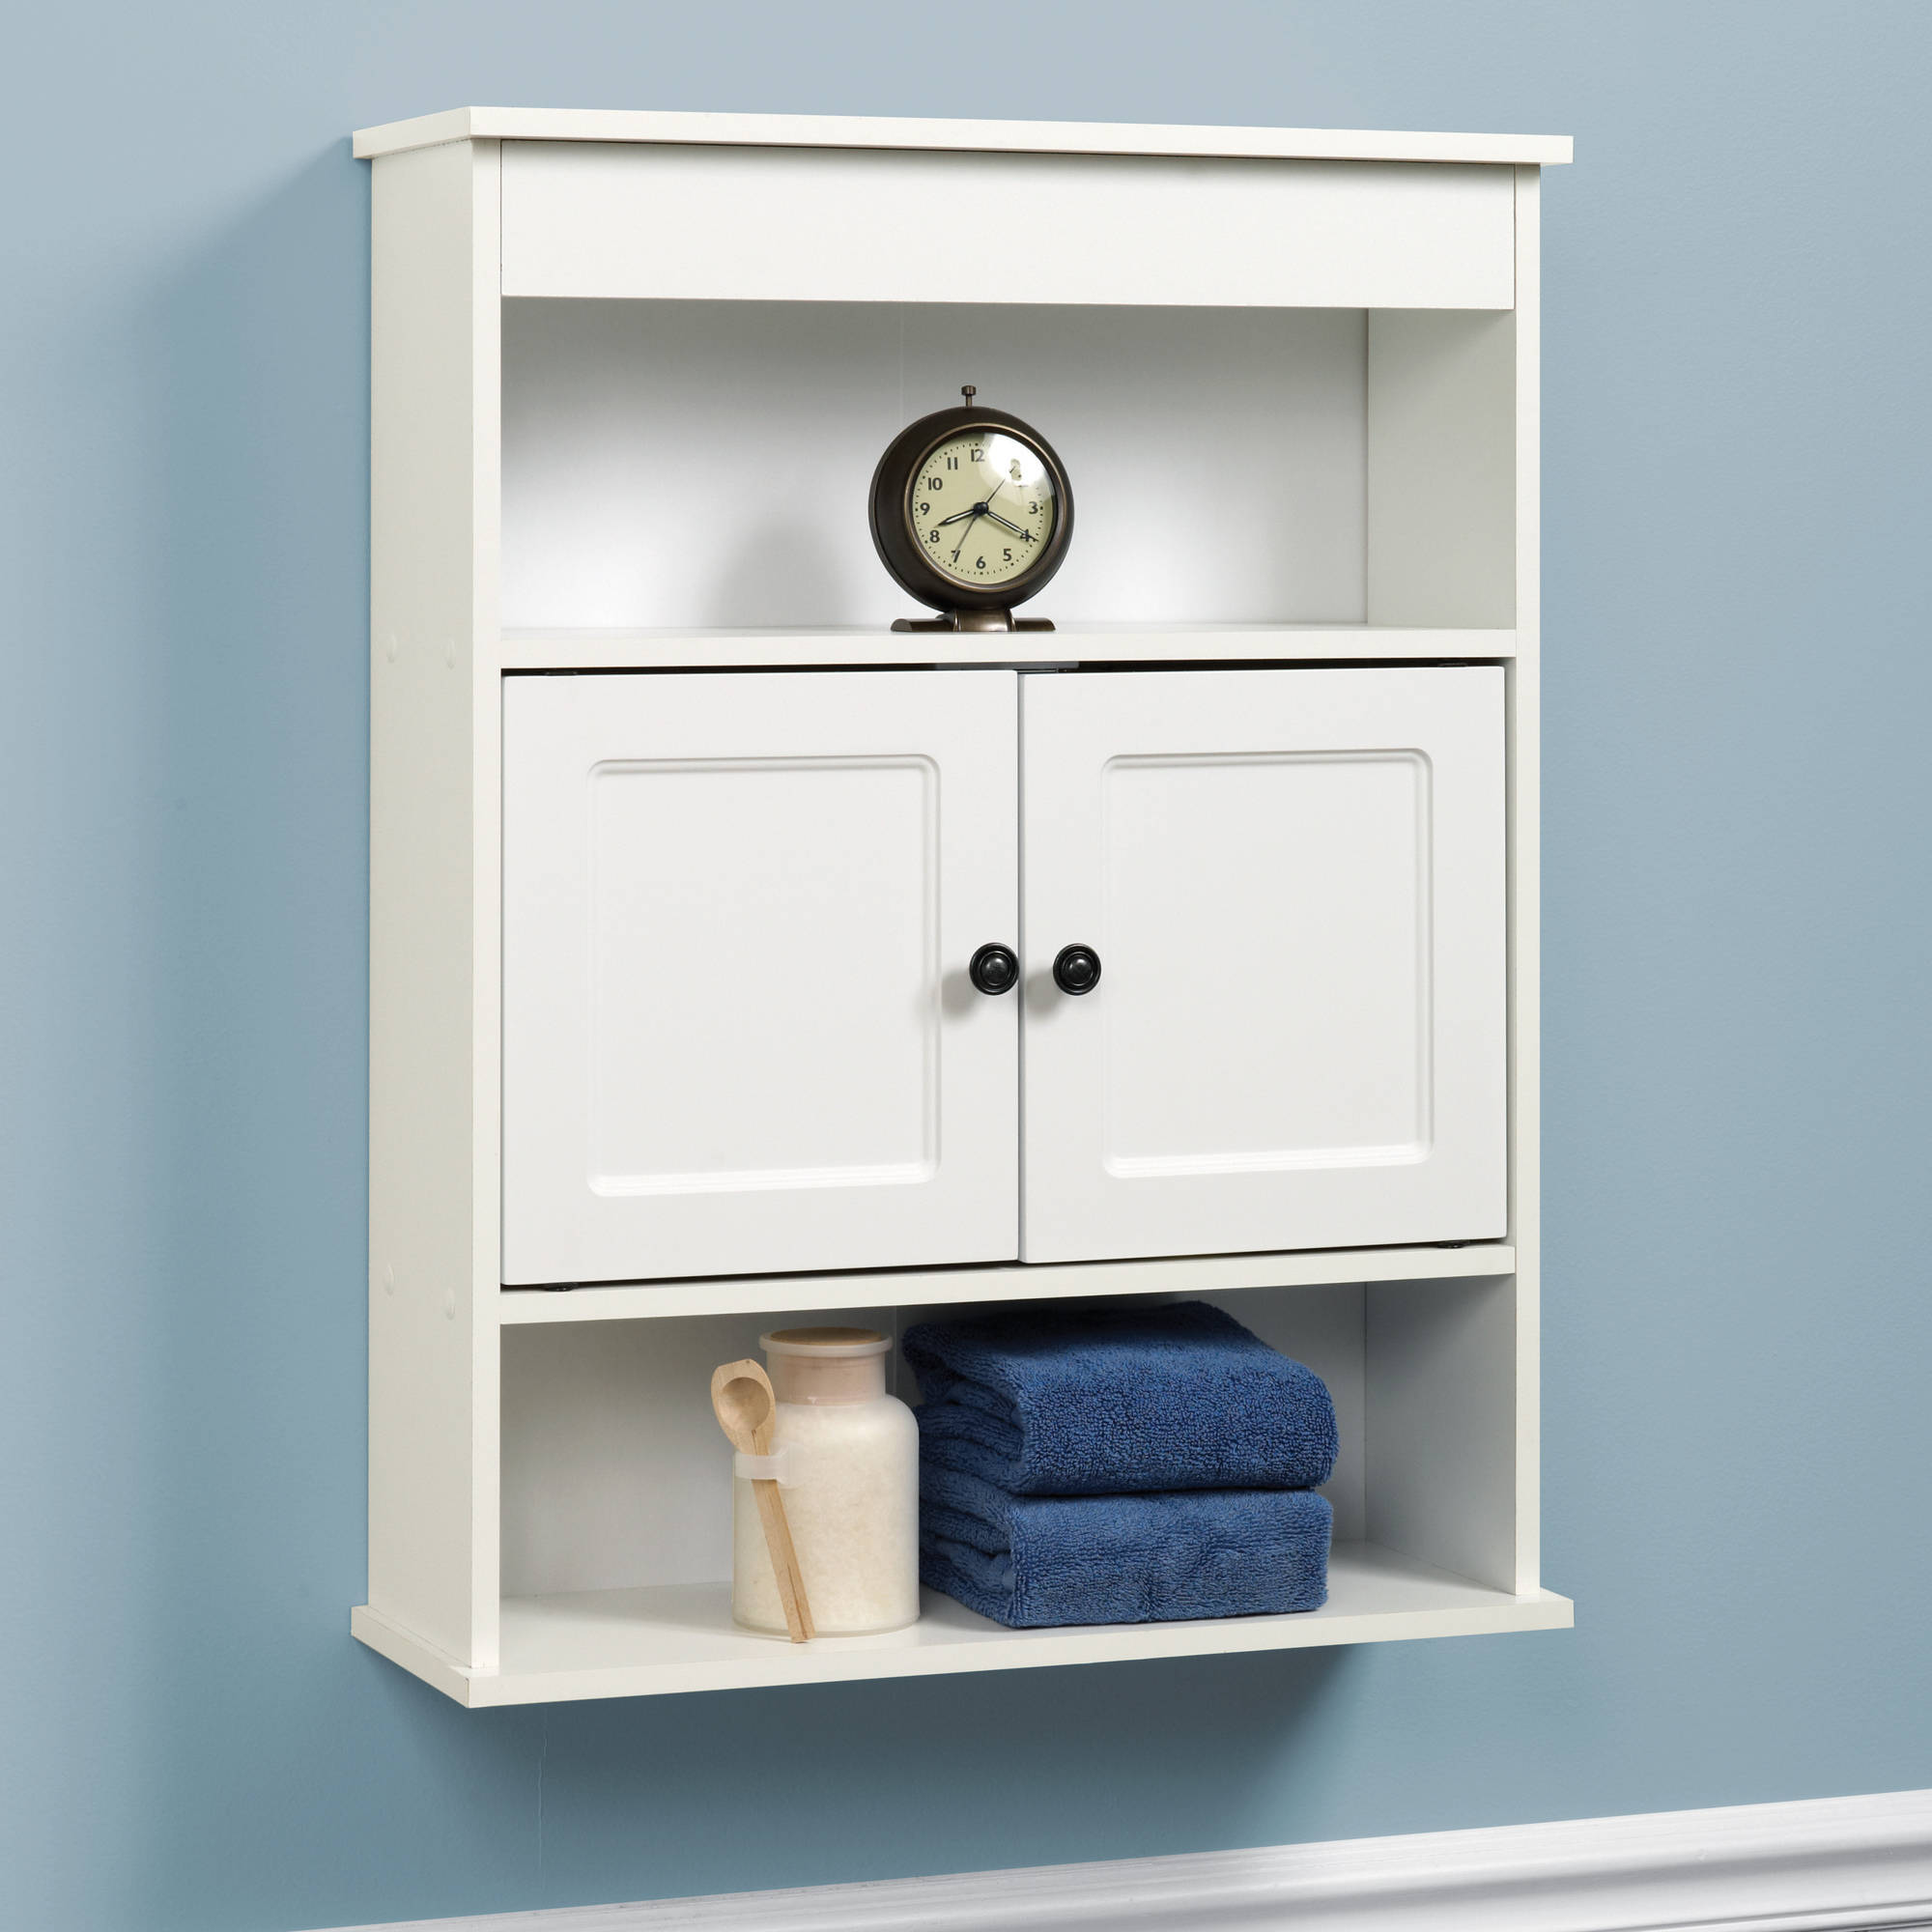 Walmart bathroom storage - Chapter Bathroom Wall Cabinet White